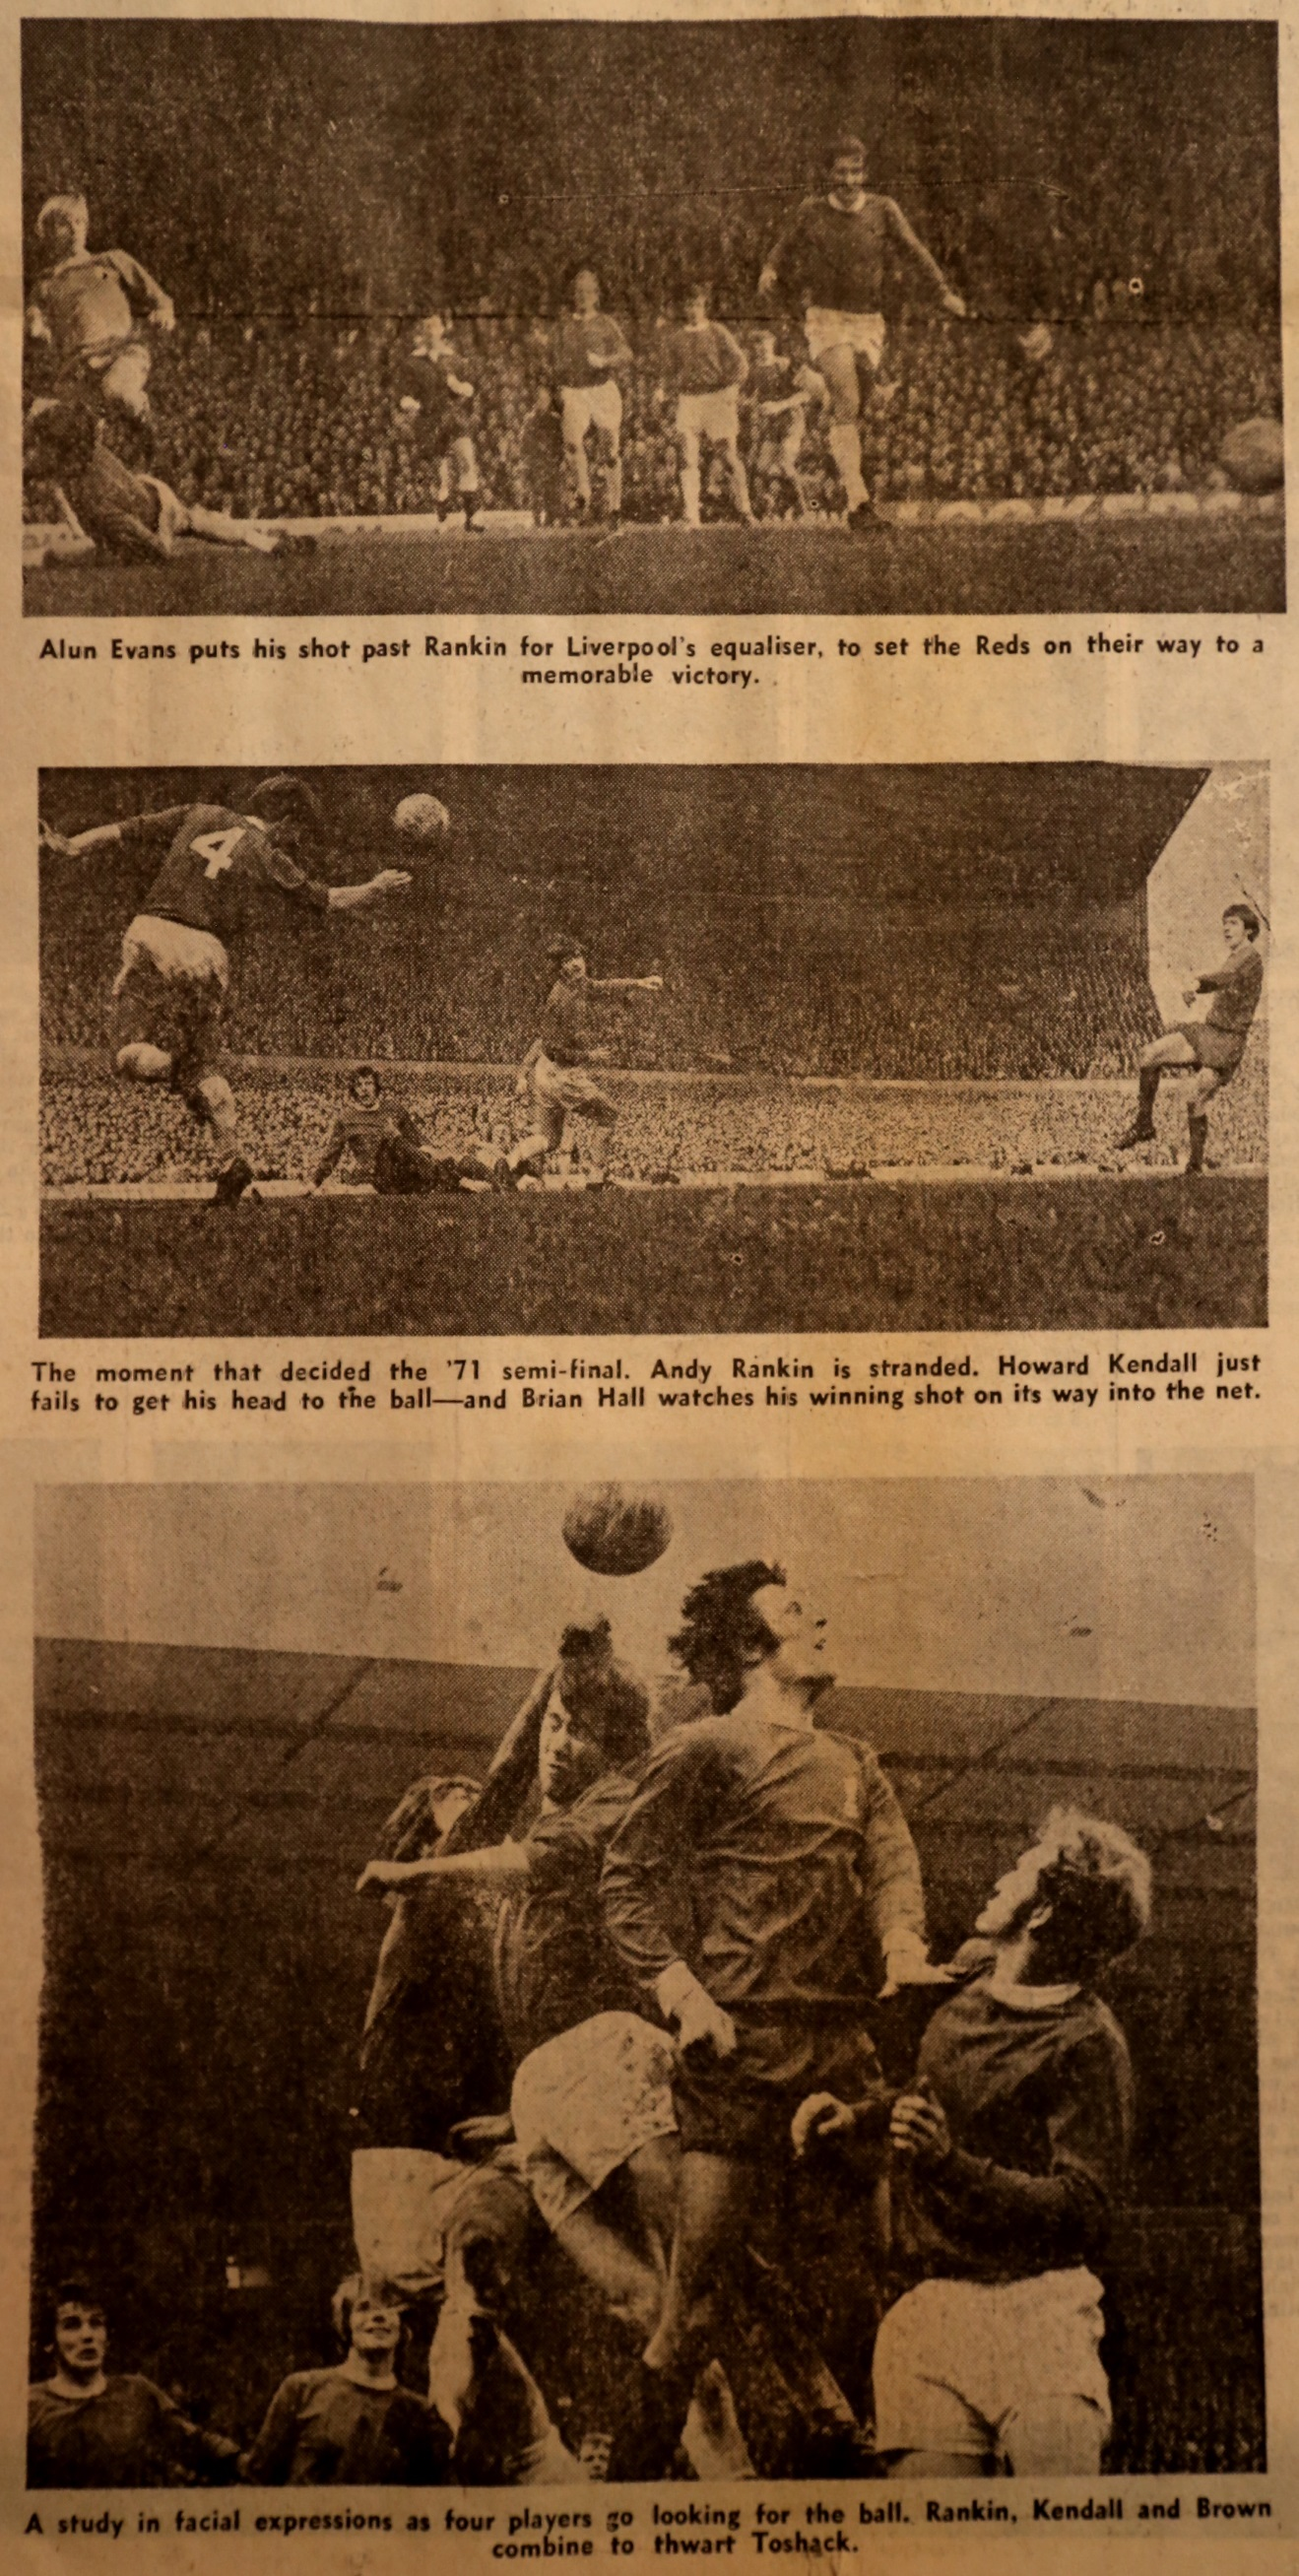 The goals that booked Wembley - 27 March 1971